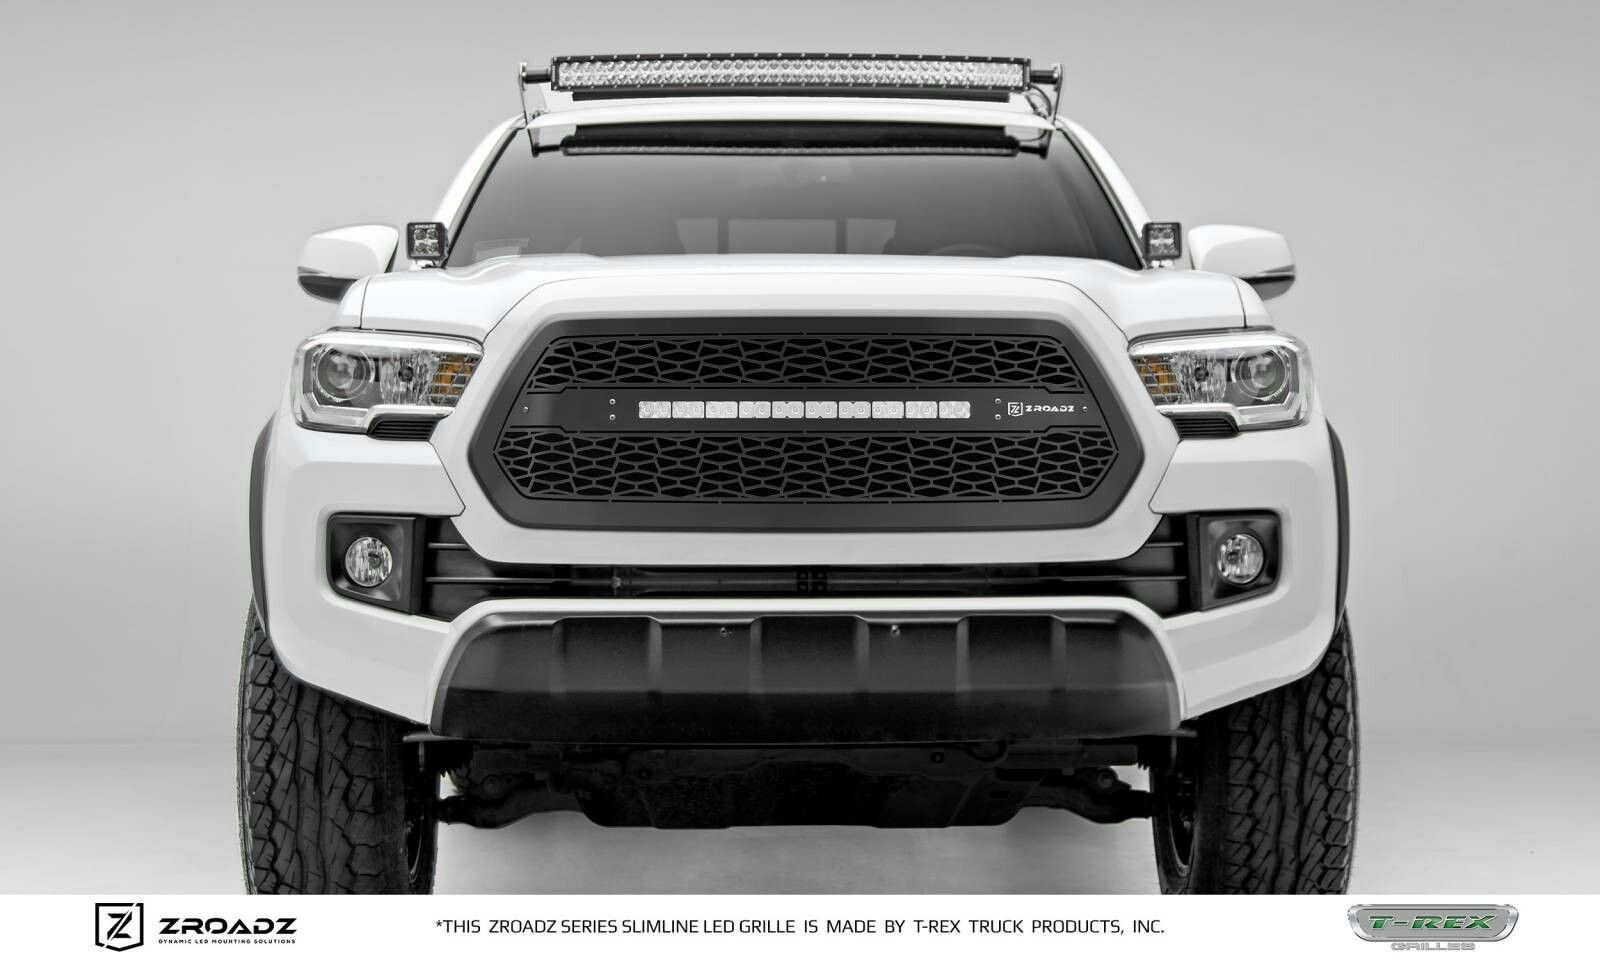 2016 TRD offroad with ZROADZ LED grille. Toyota